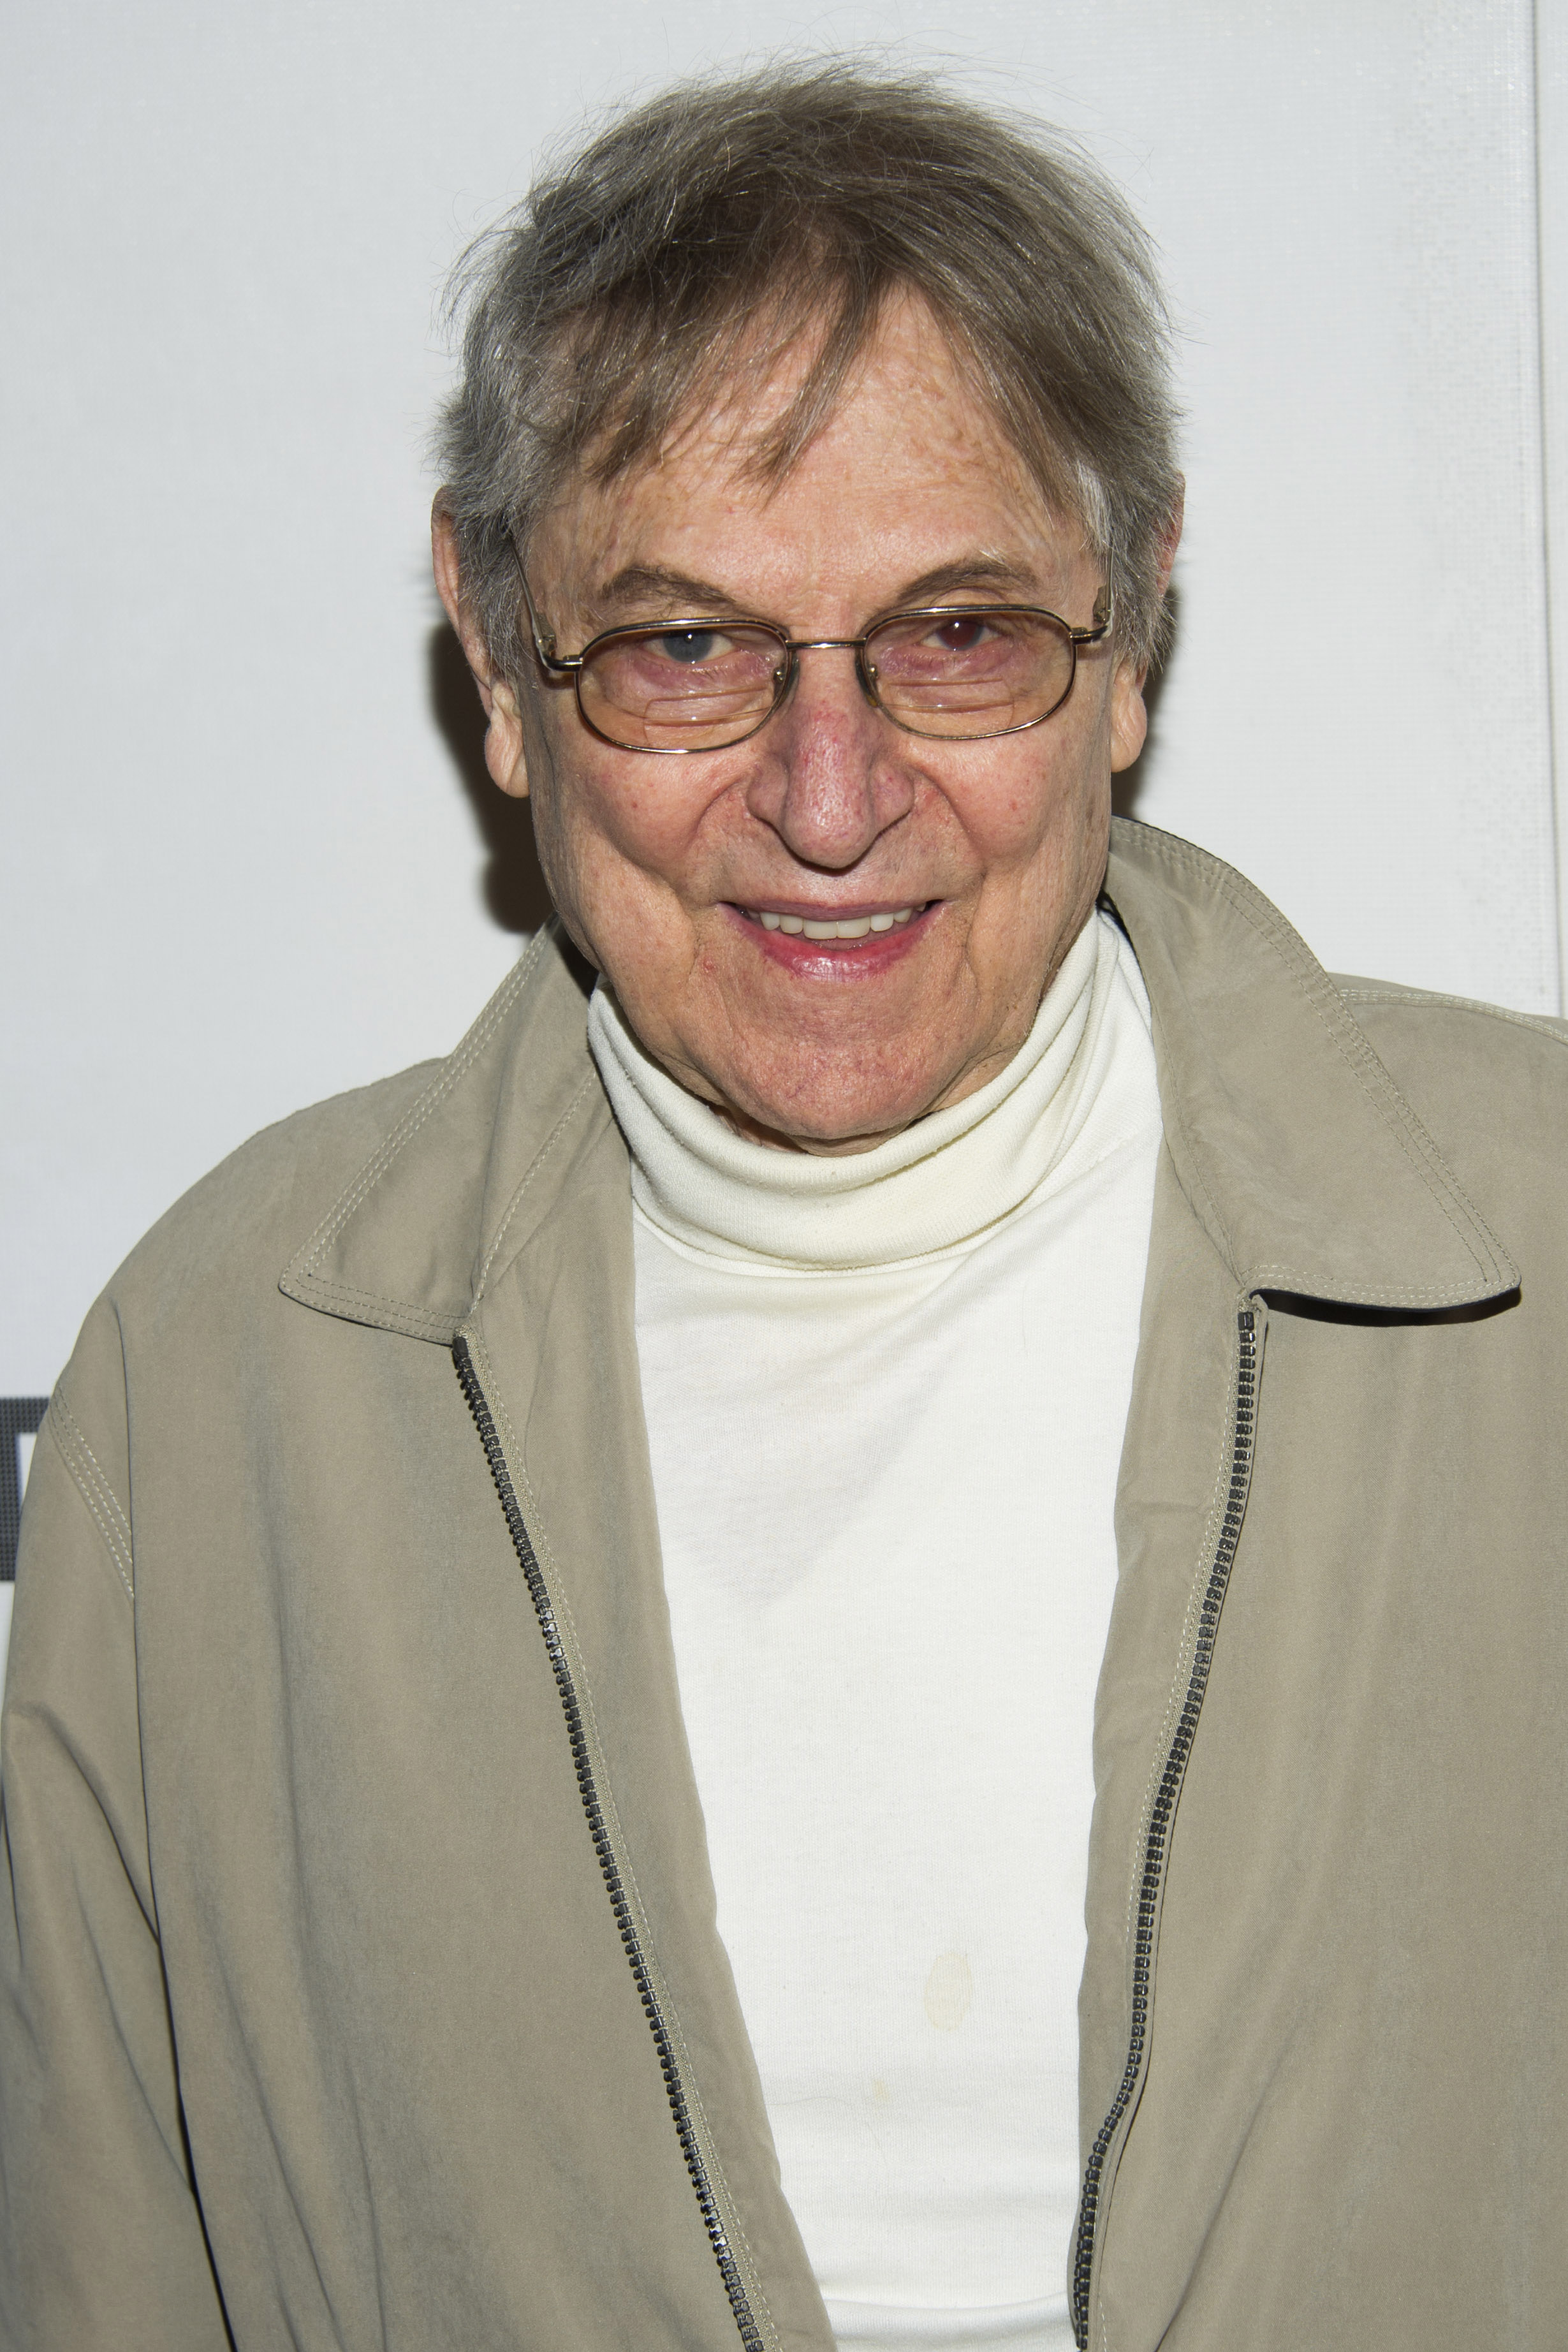 New York theater named after stage and TV actor John Cullum